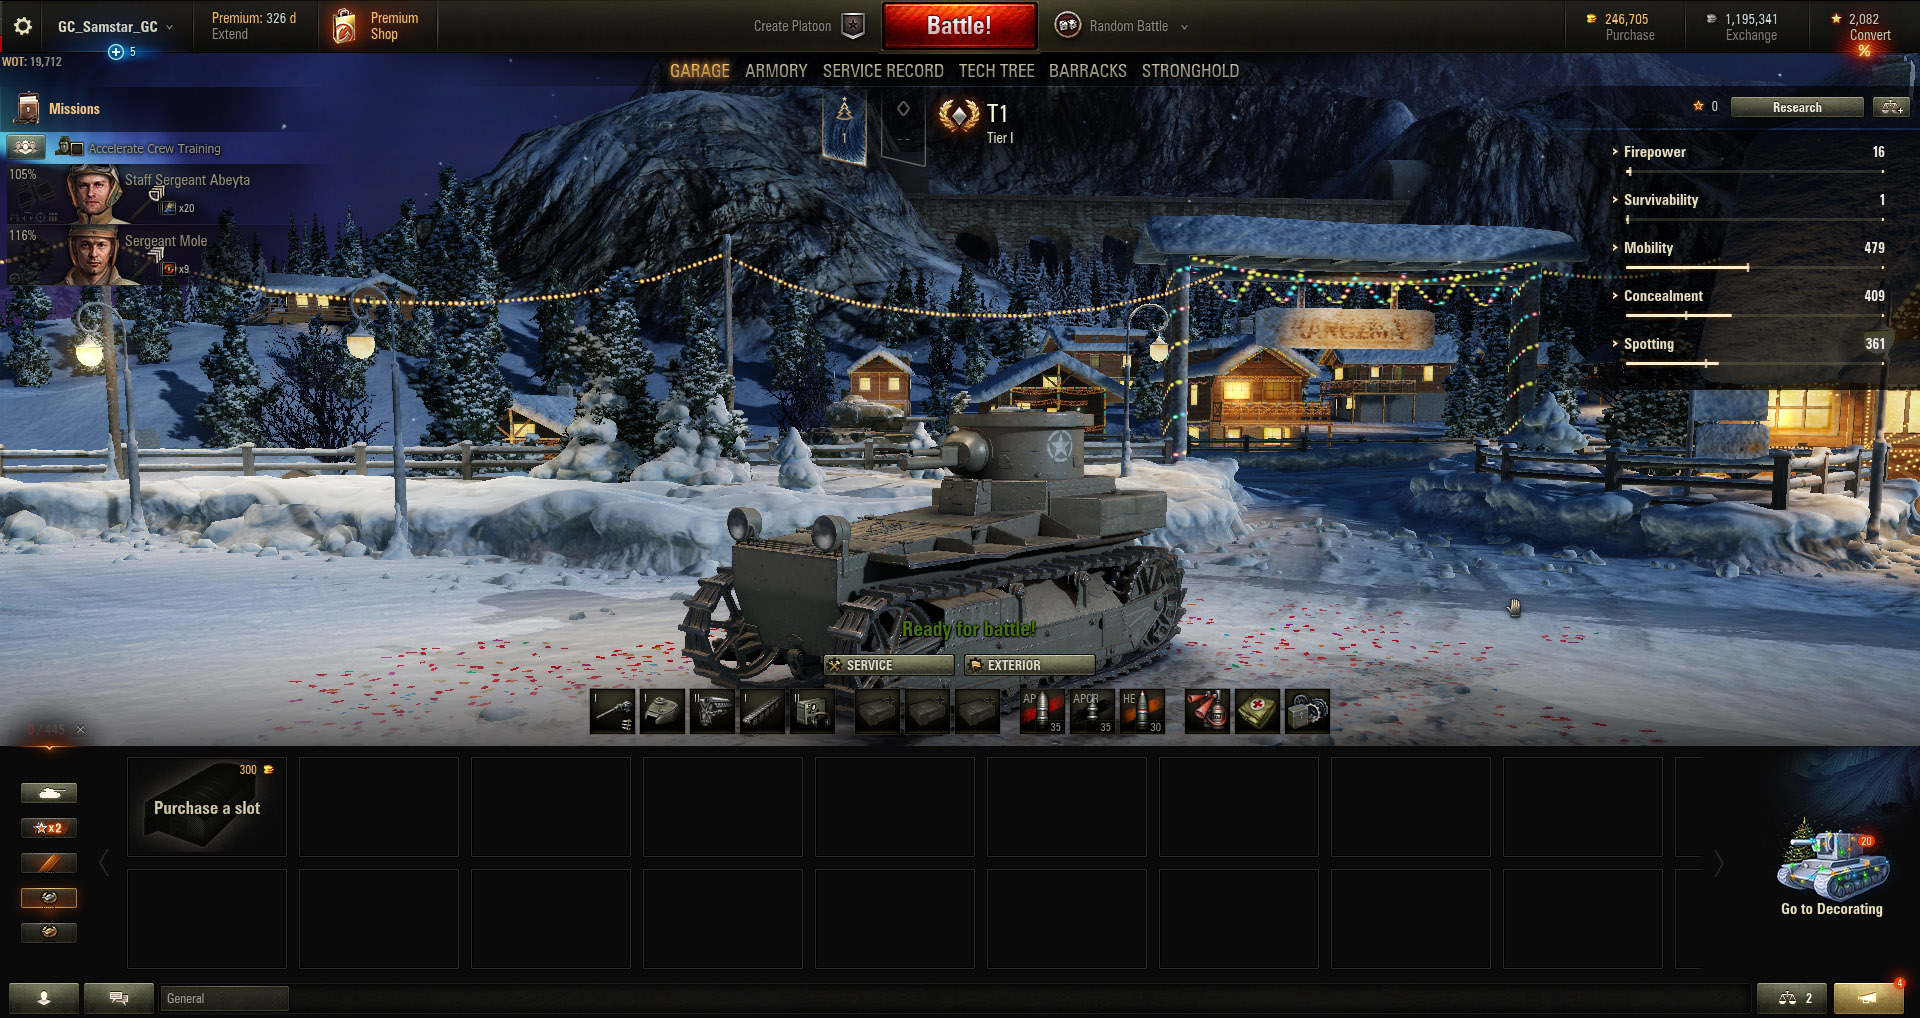 The T1 Cunningham is a nimble Tier 1 light tank from the USA tech tree.